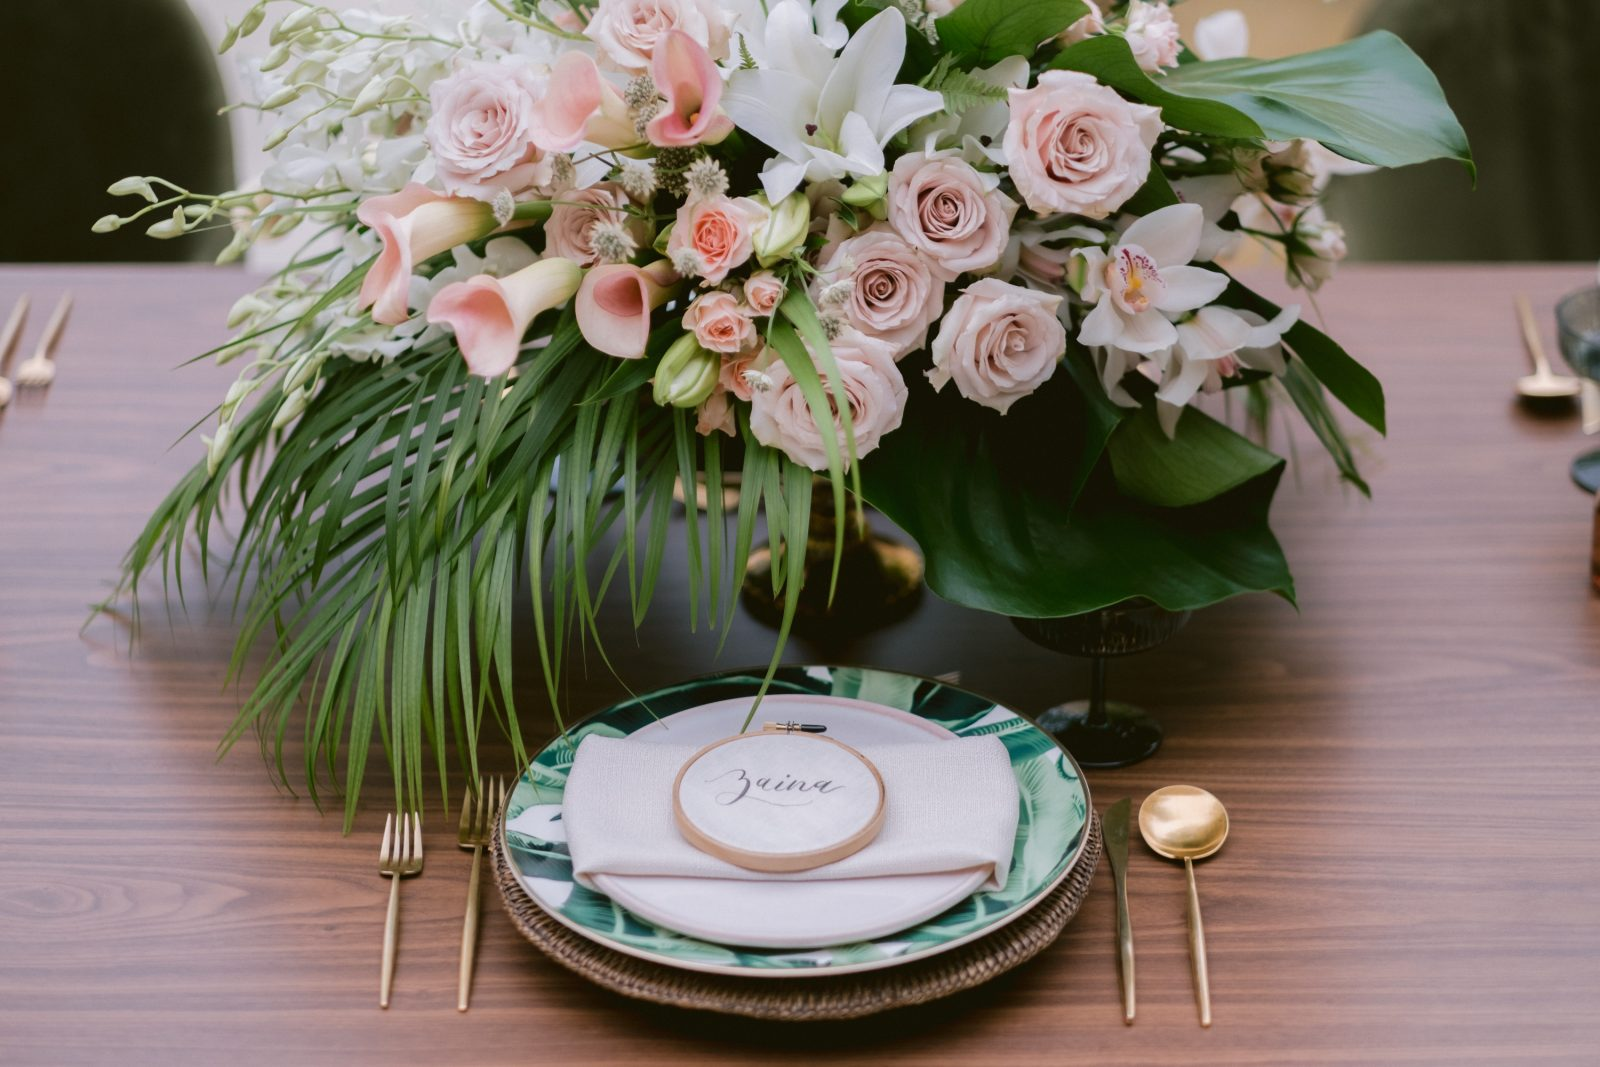 Wedding place setting inspiration